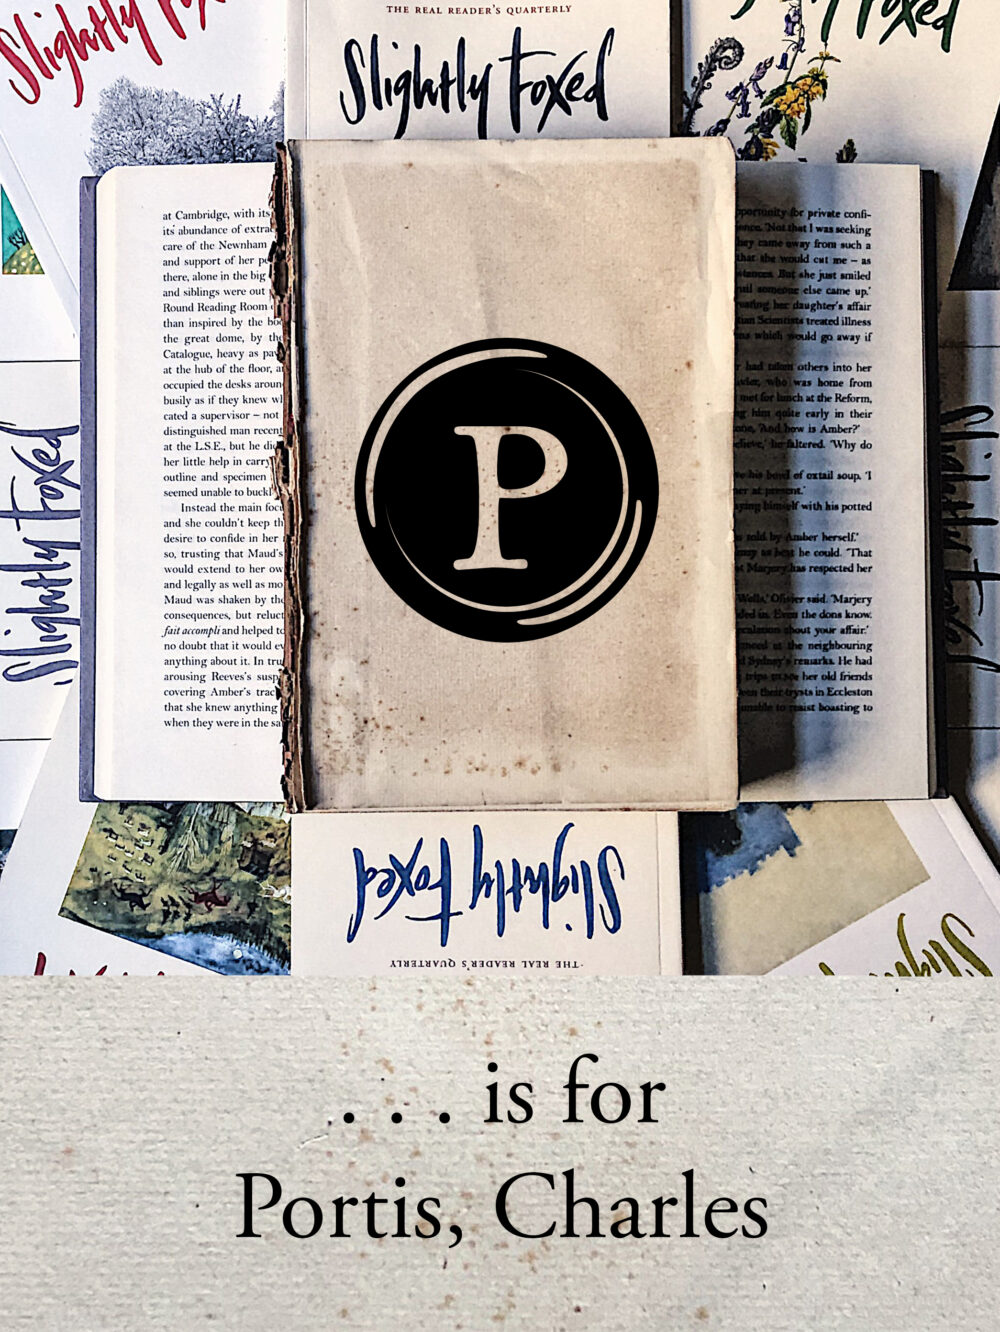 P is for Portis, Charles | From the Slightly Foxed archives